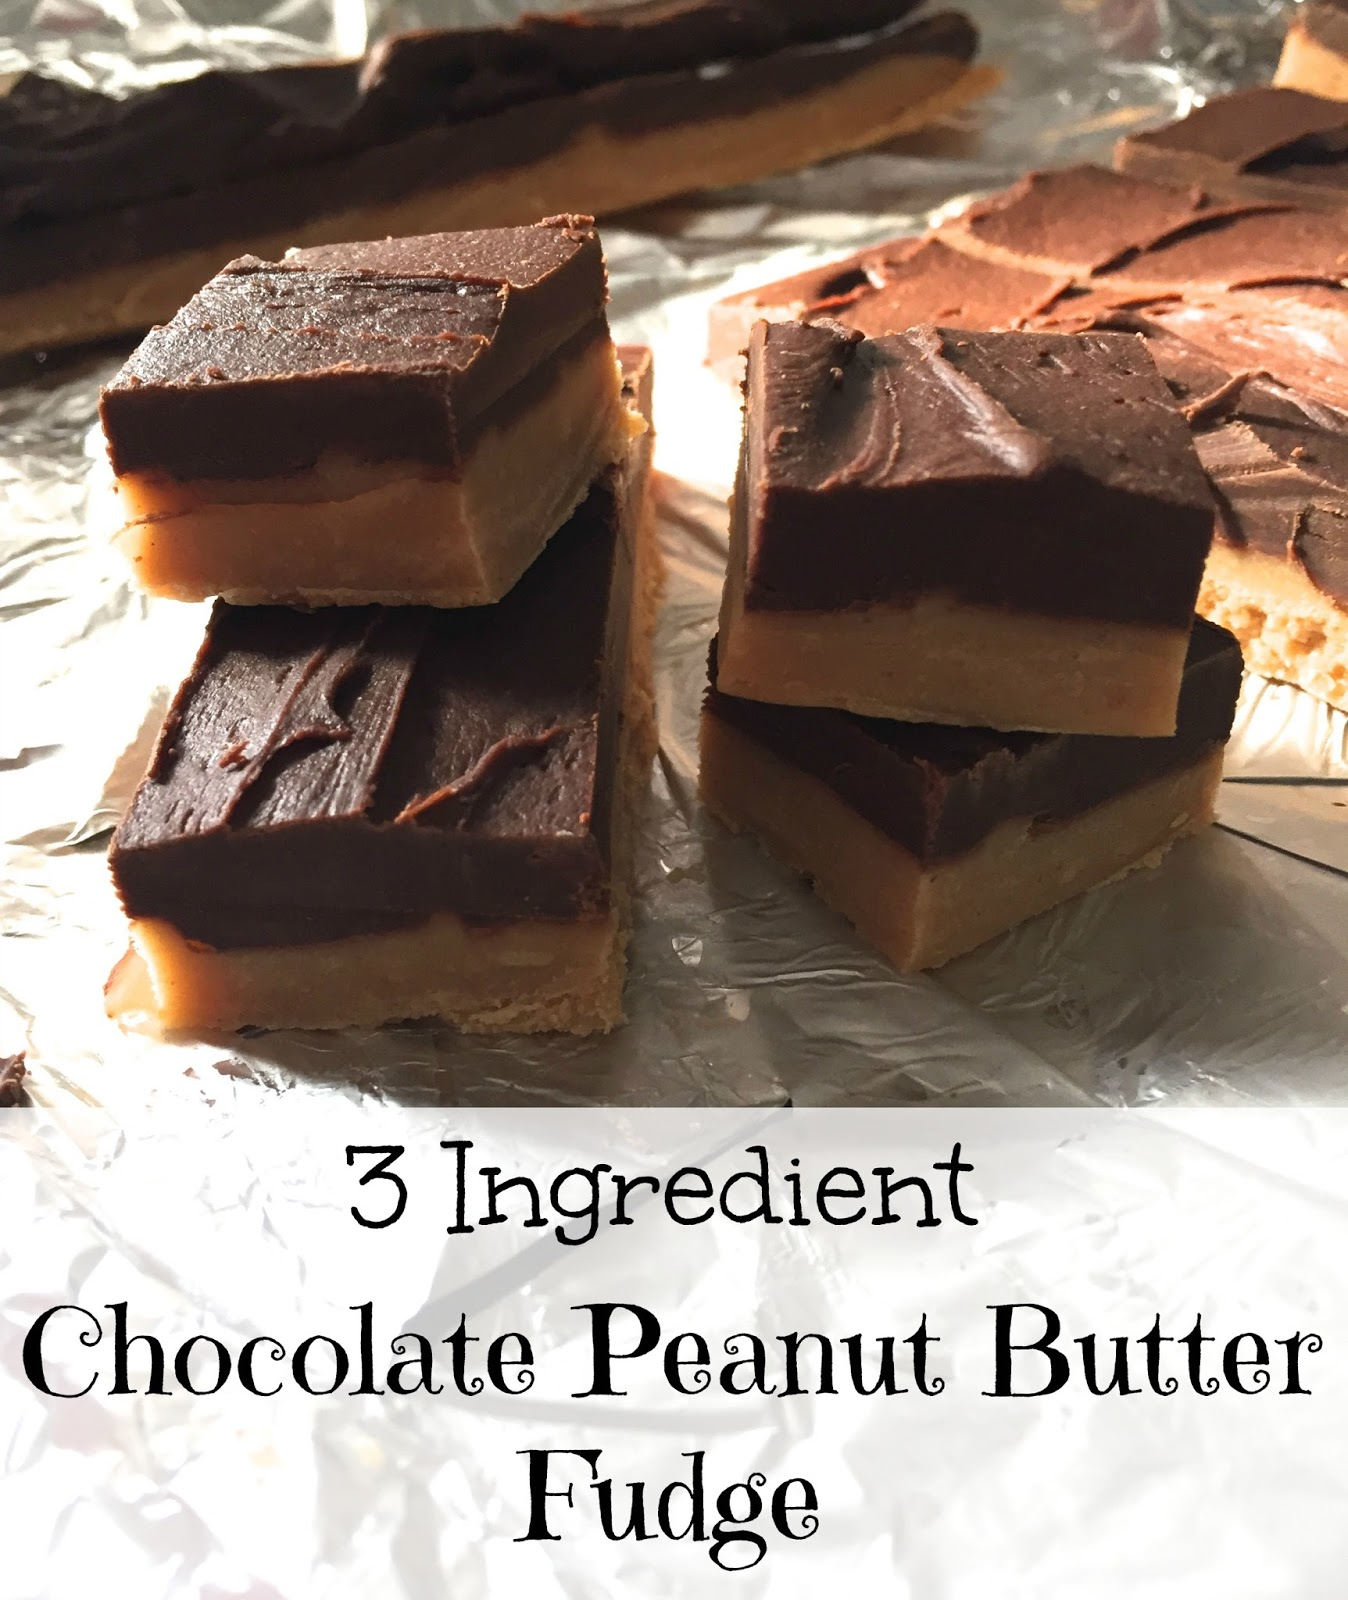 3 Ingredient Chocolate Peanut Butter Fudge Not Entirely